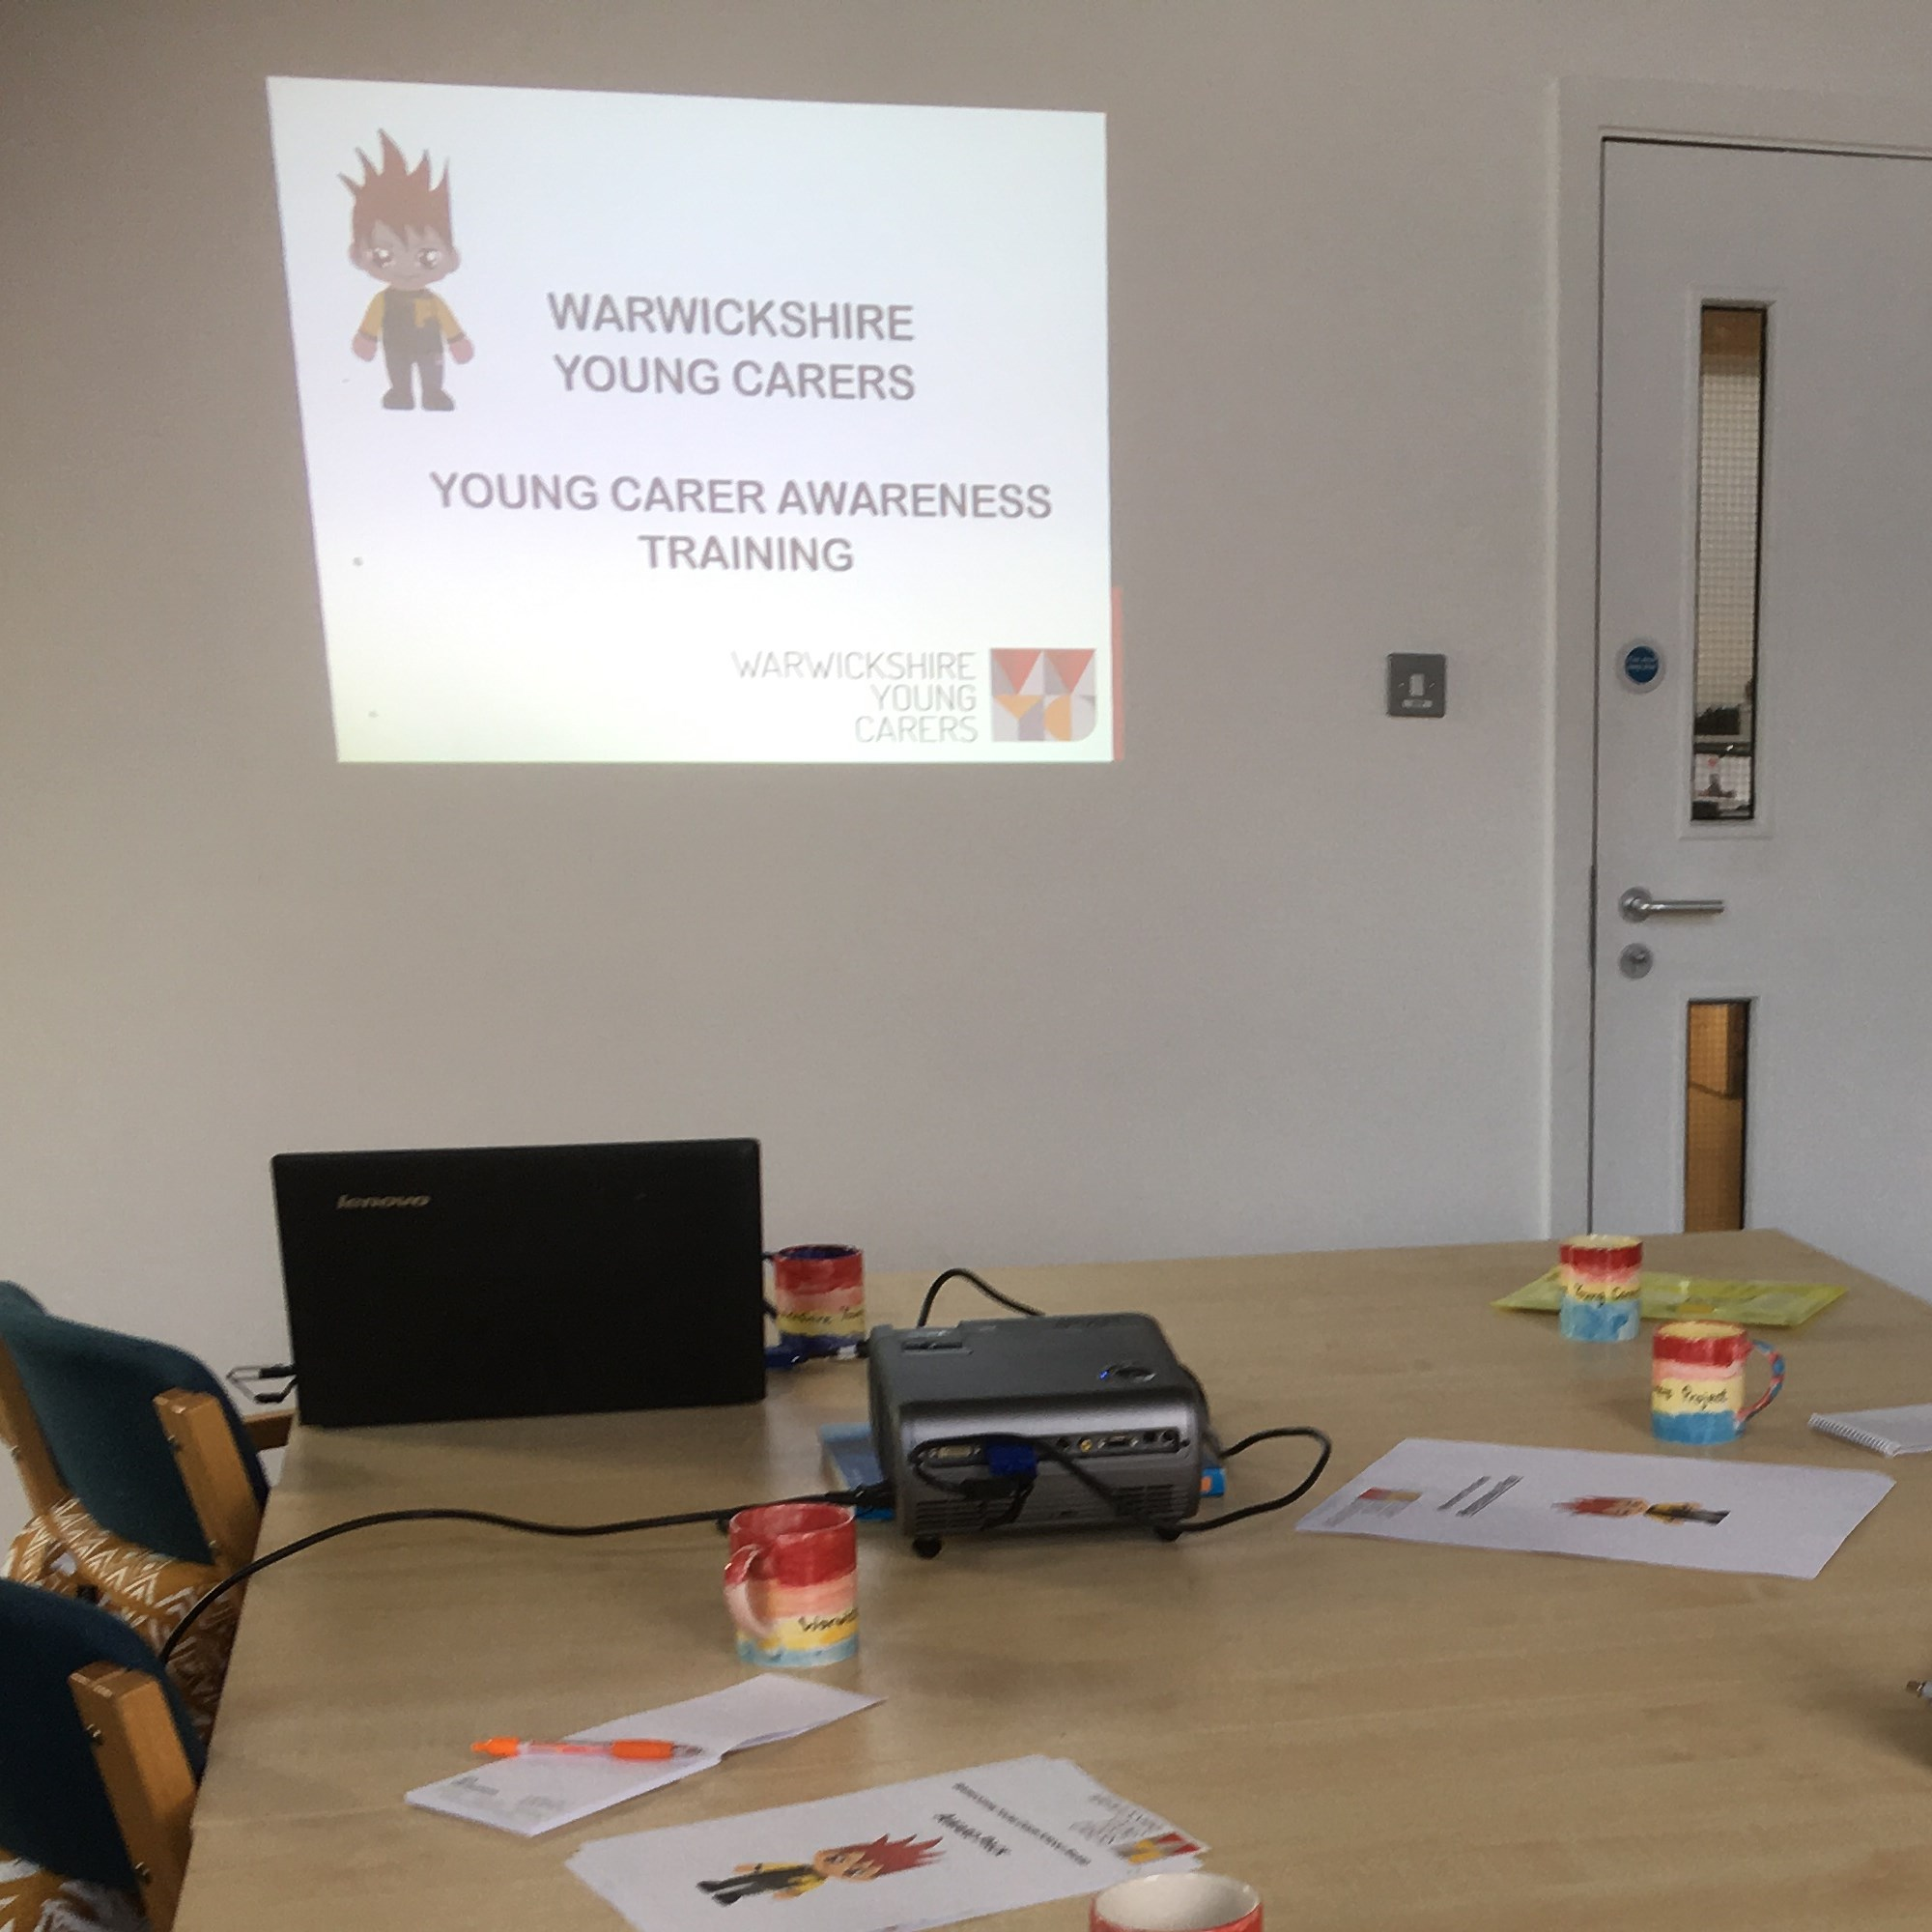 all setup ready for training crop2000x2000